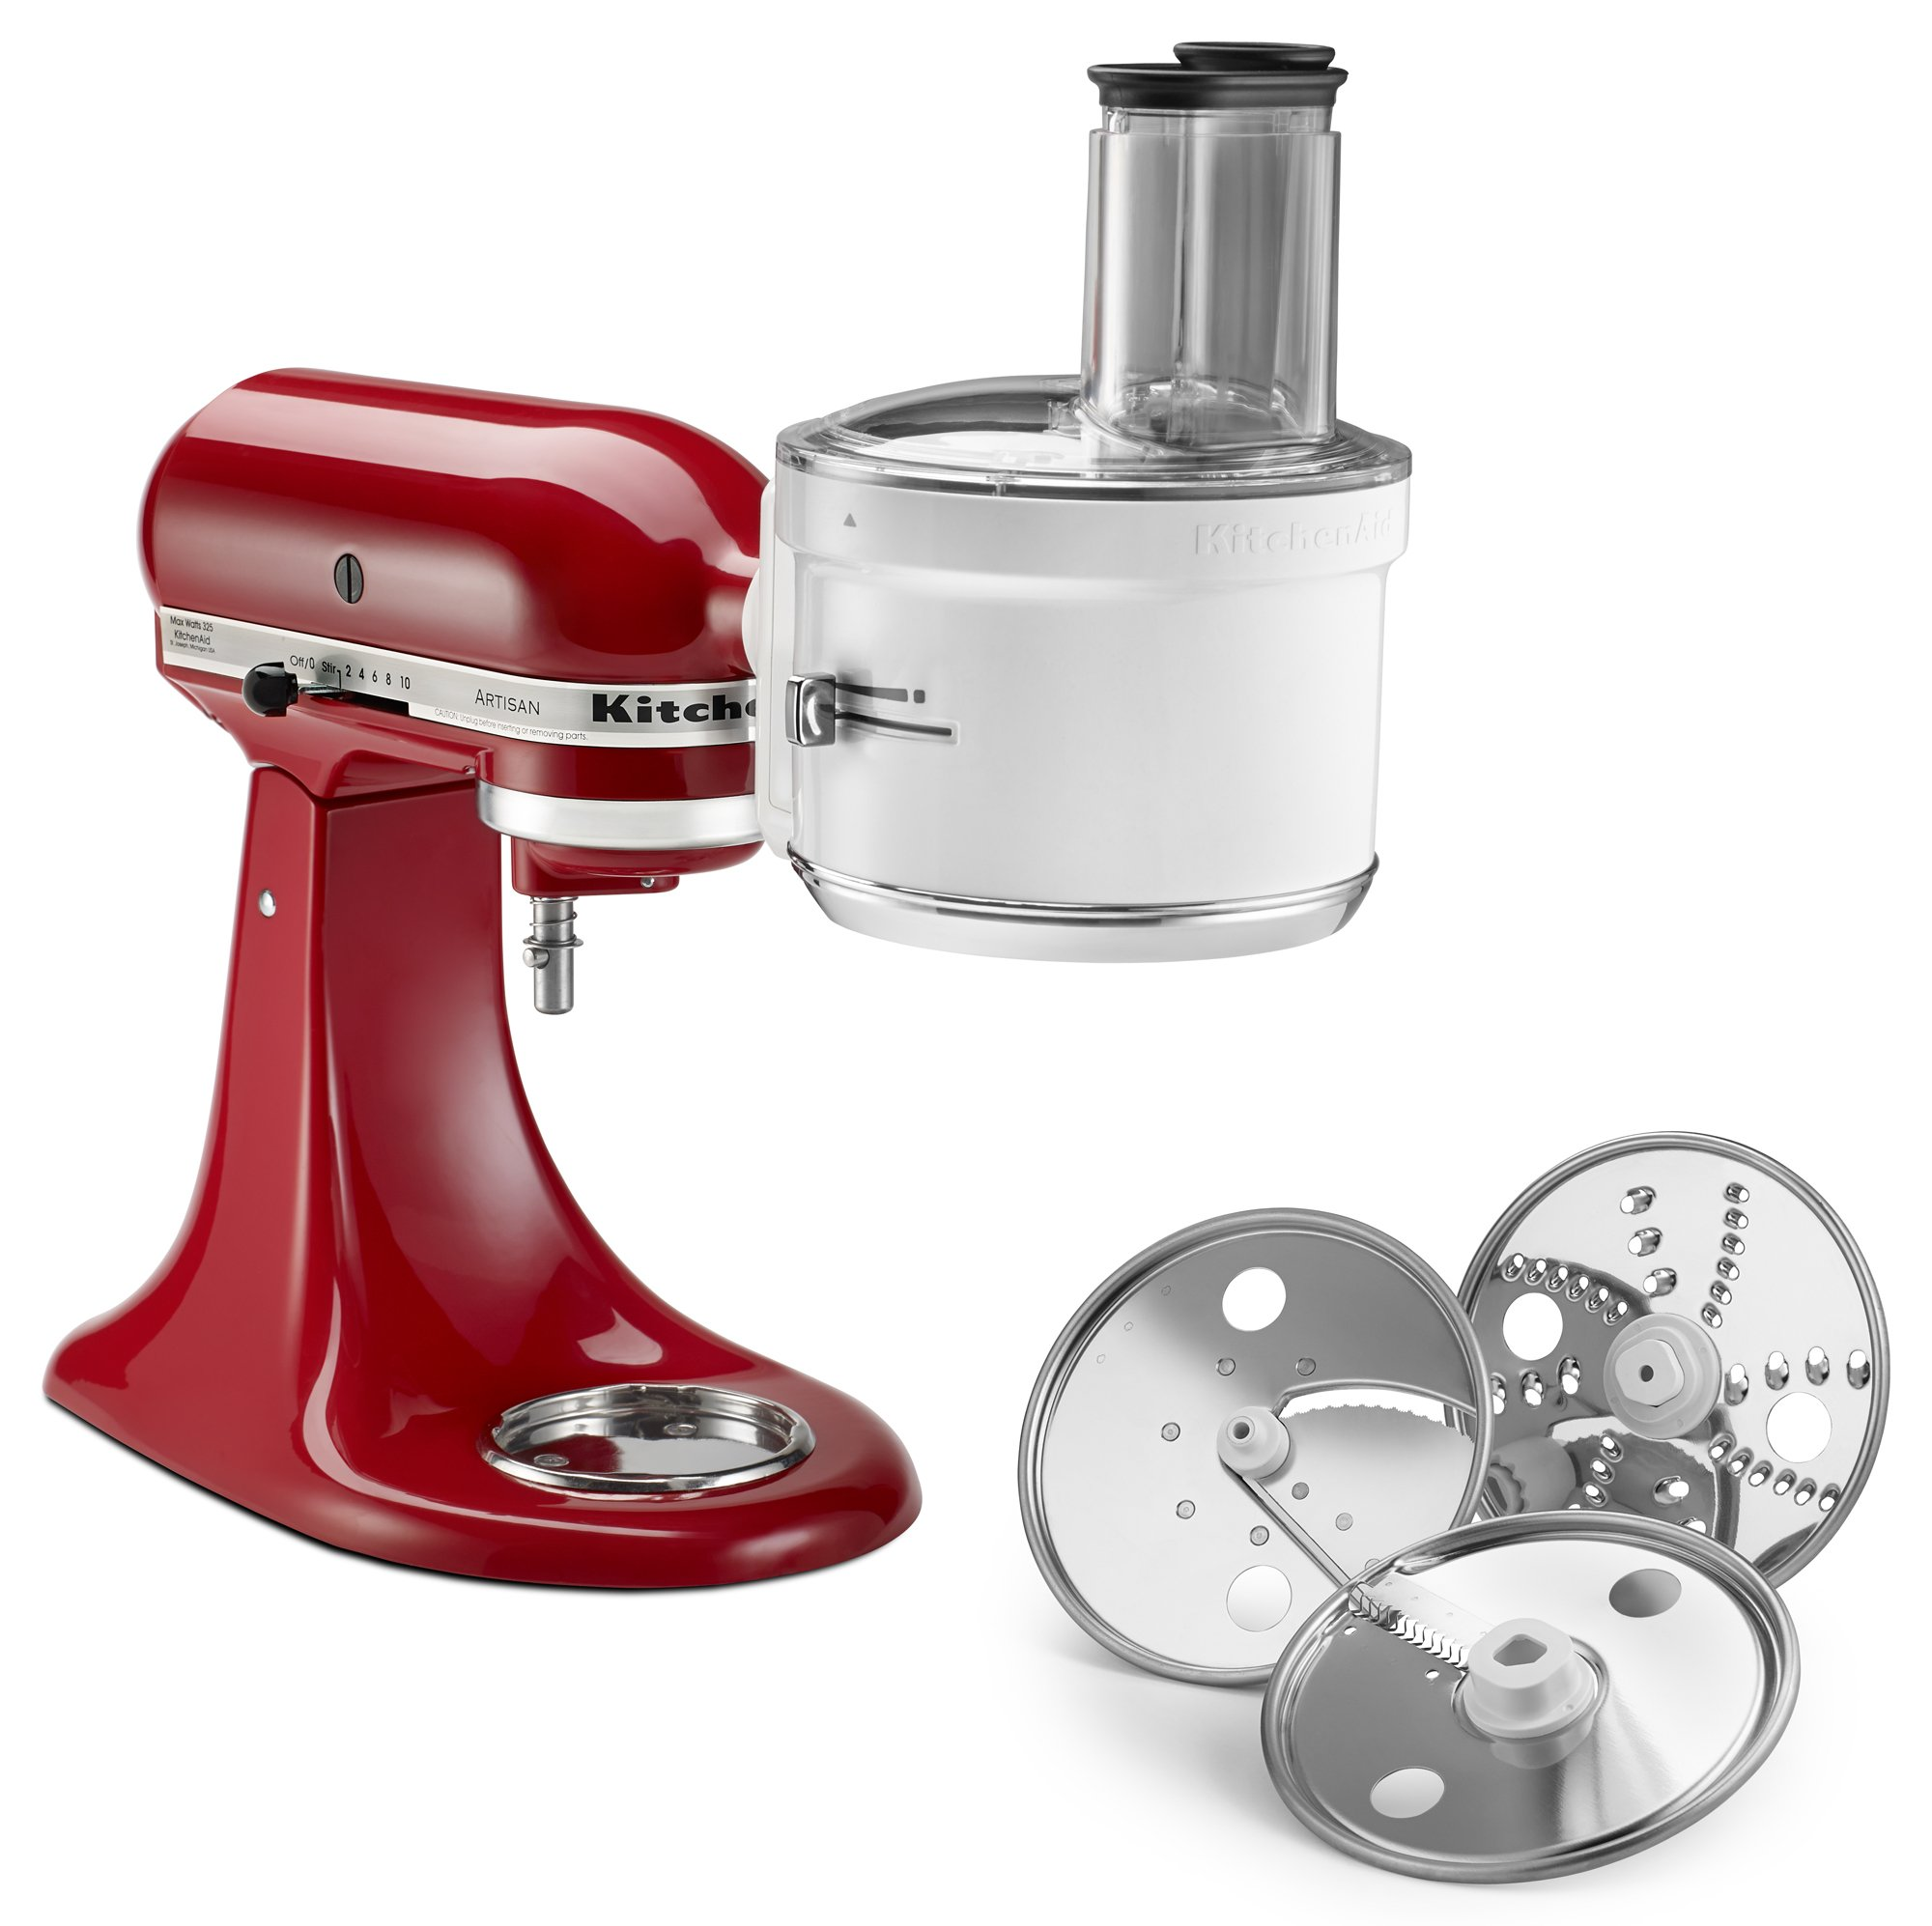 KitchenAid KSM1FPA Food Processor Attachment by KitchenAid (Image #3)